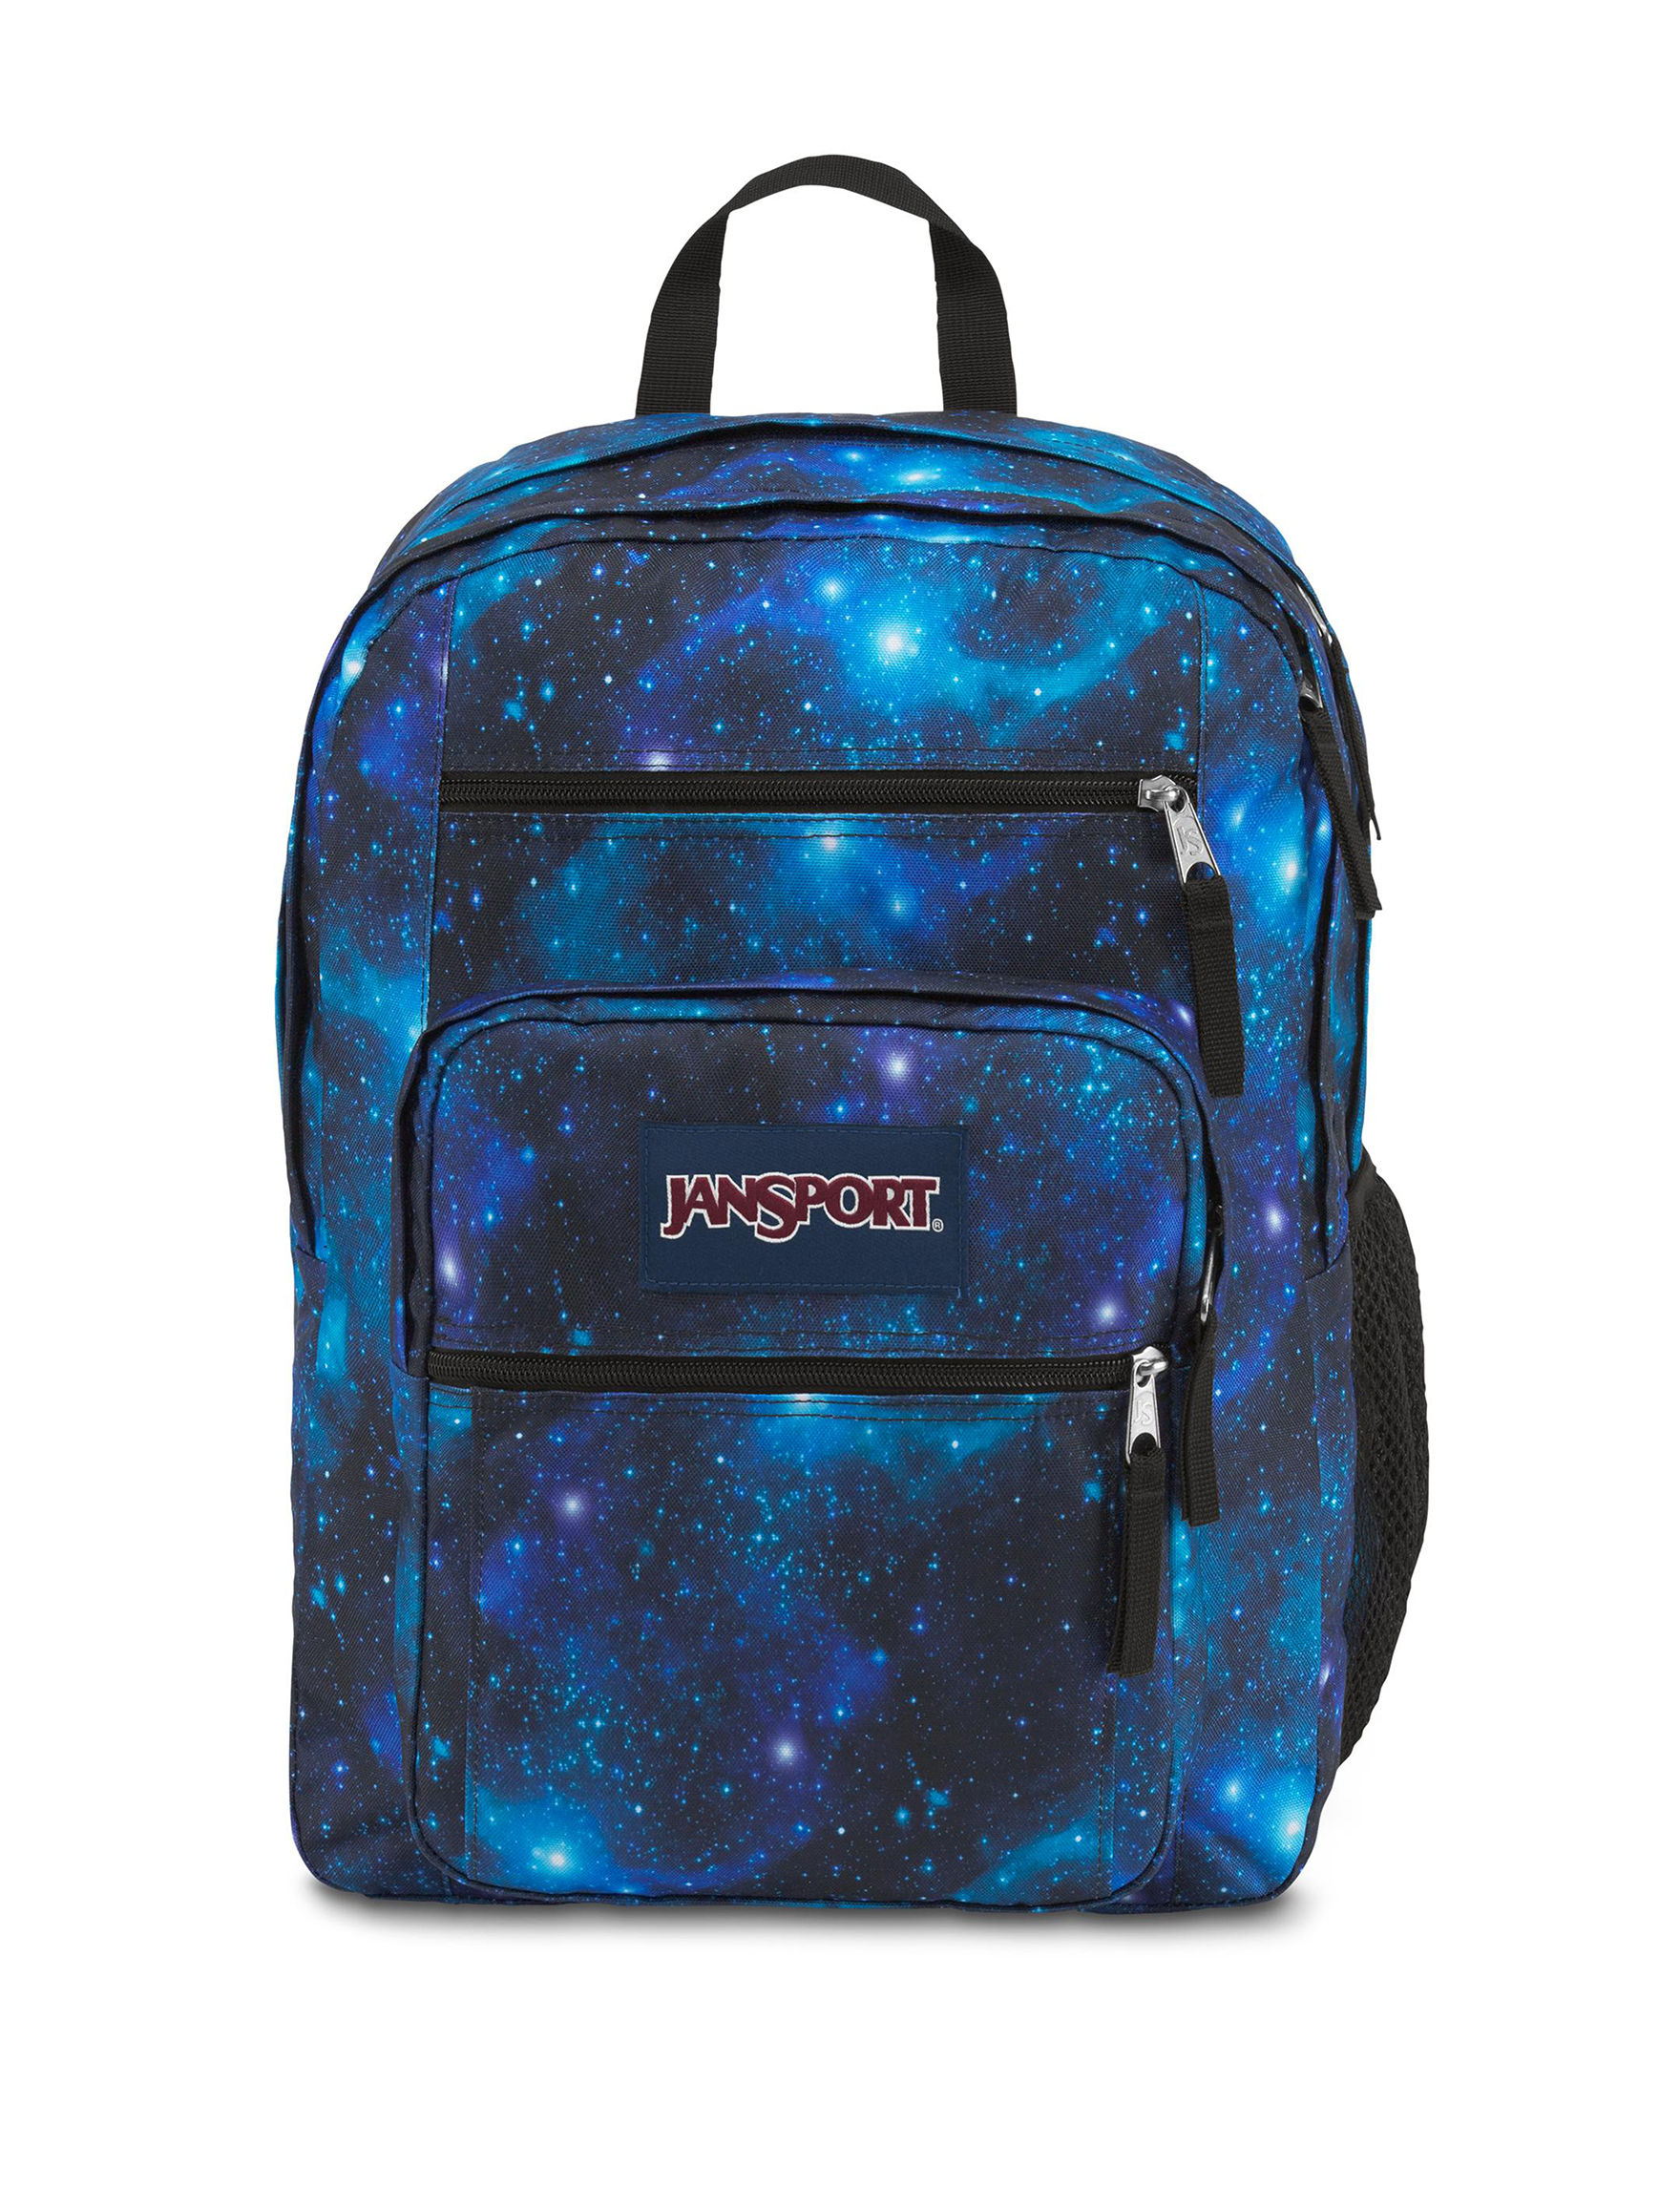 Jansport Black And White Galaxy Backpack- Fenix Toulouse Handball b1e8fef884212